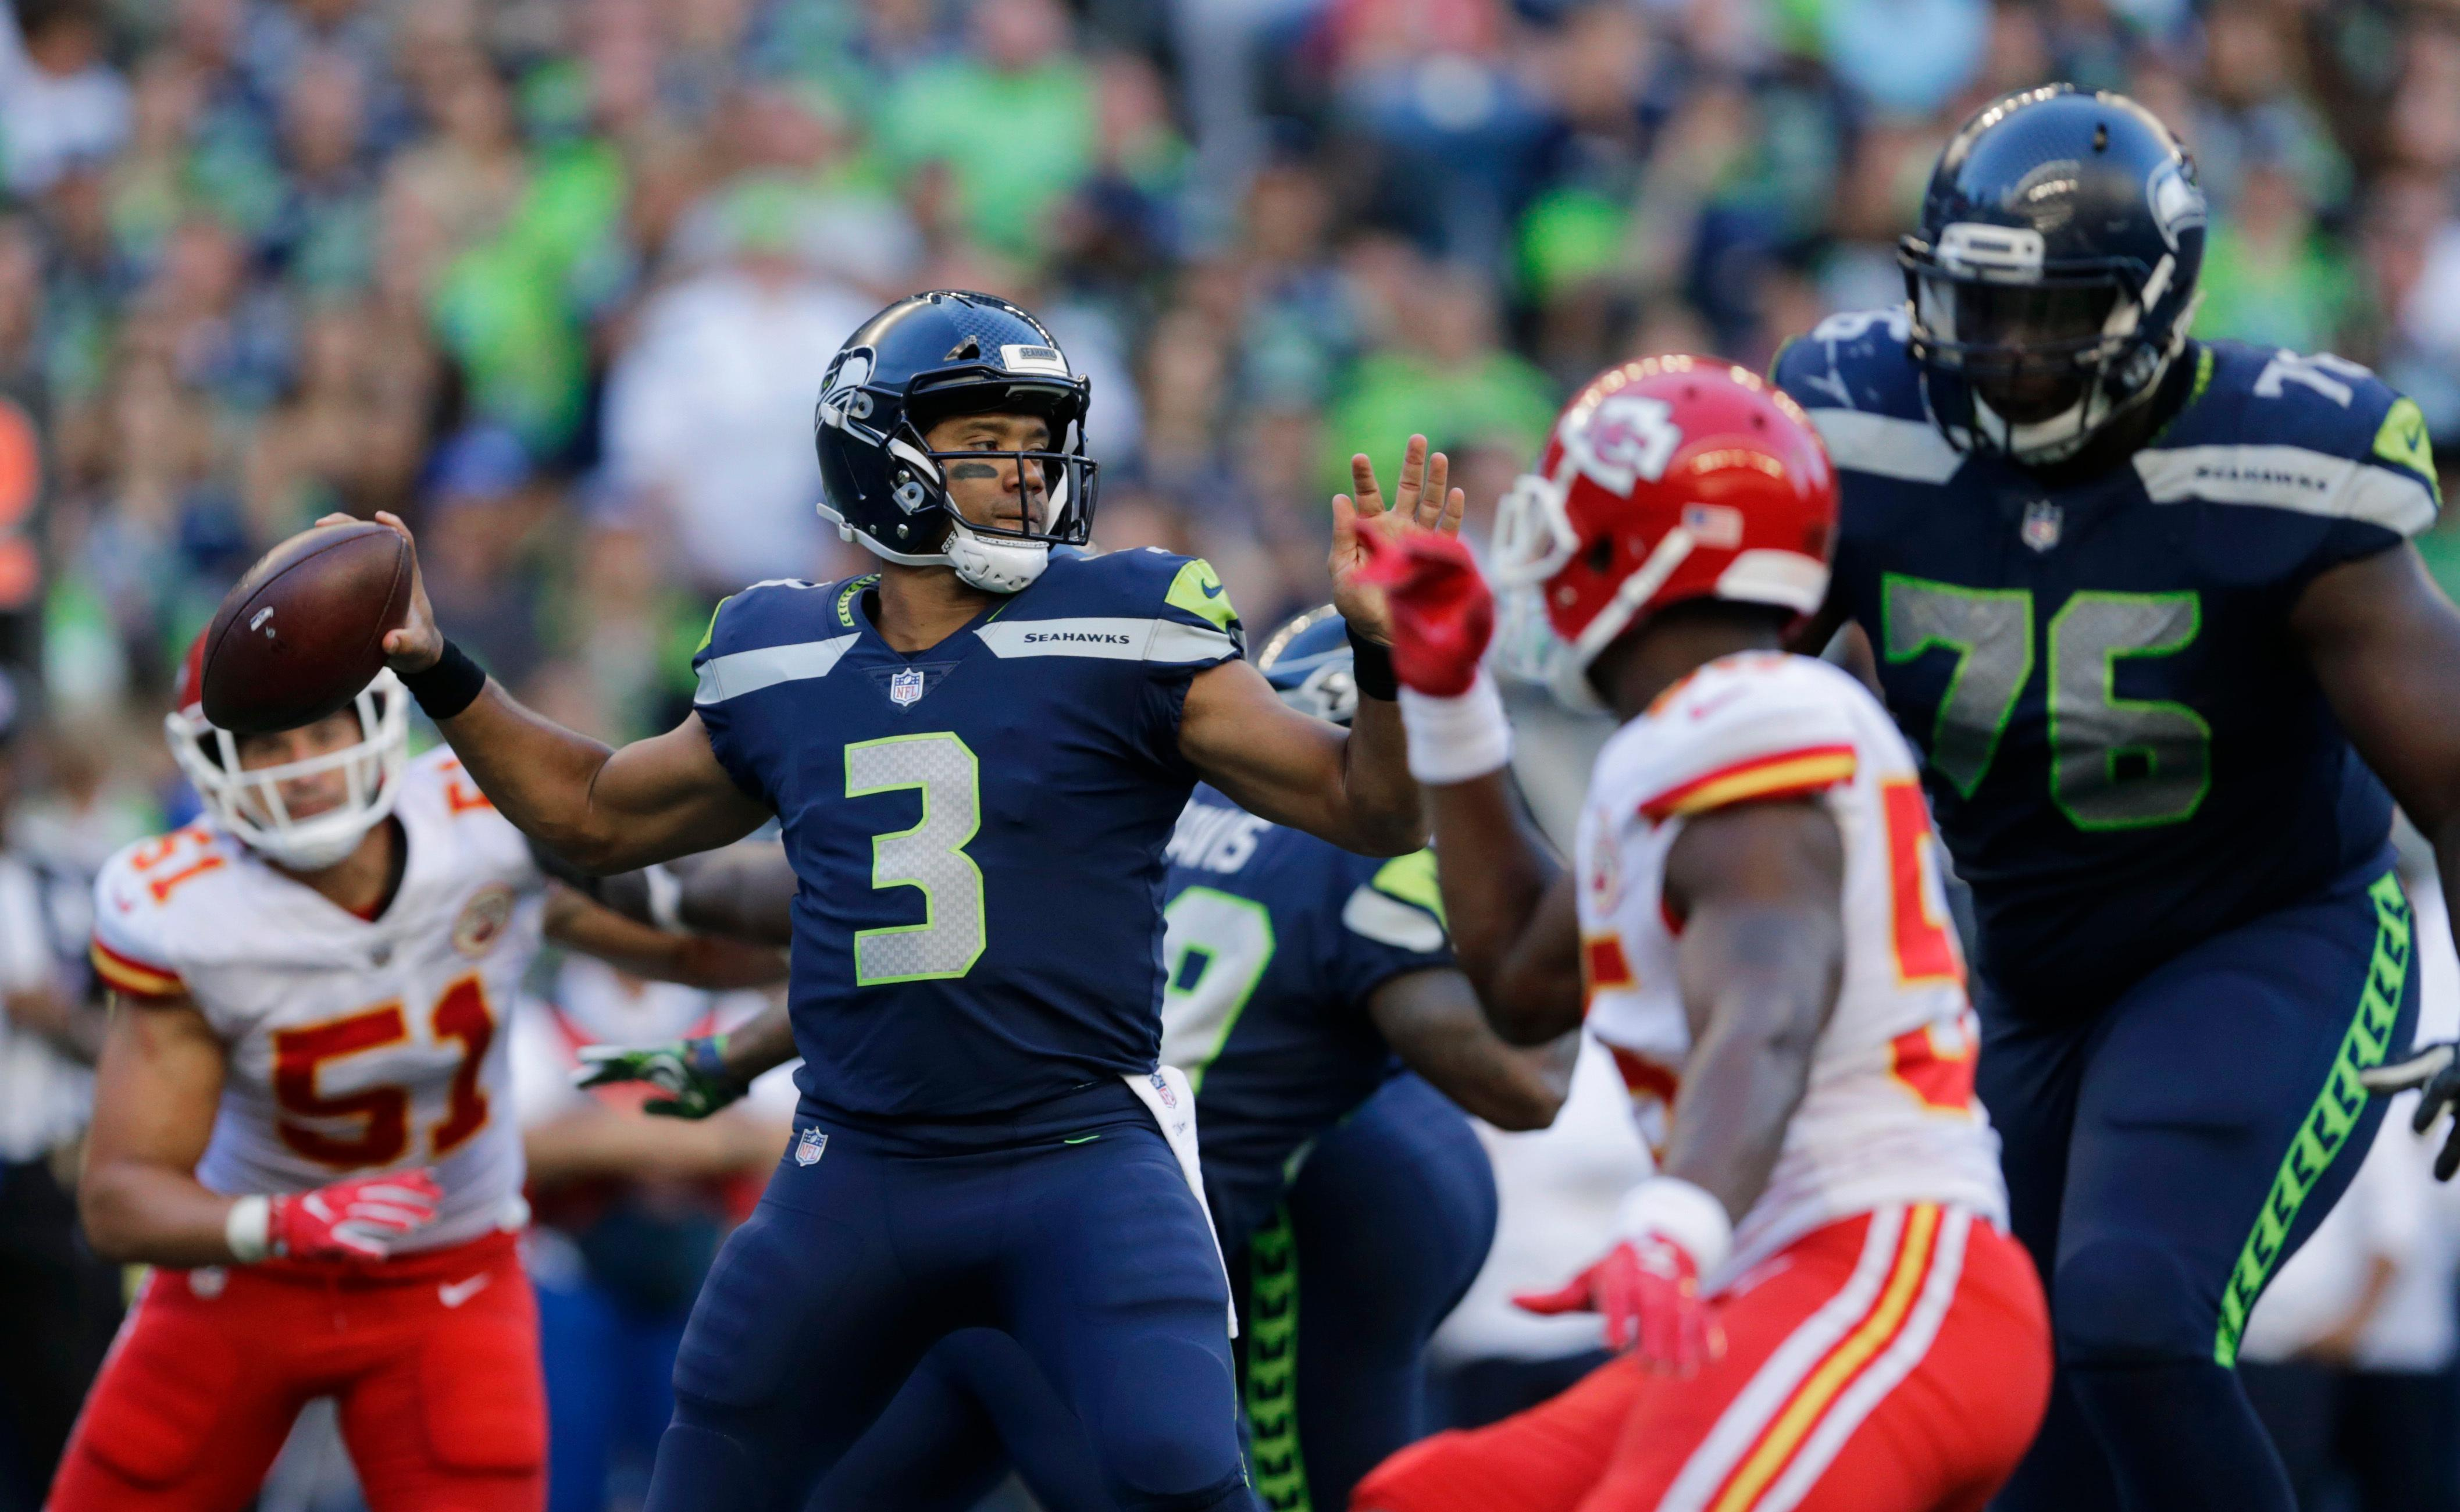 Seattle Seahawks quarterback Russell Wilson (3) looks to pass against the Kansas City Chiefs during the first half of an NFL football preseason game, Friday, Aug. 25, 2017, in Seattle. (AP Photo/John Froschauer)